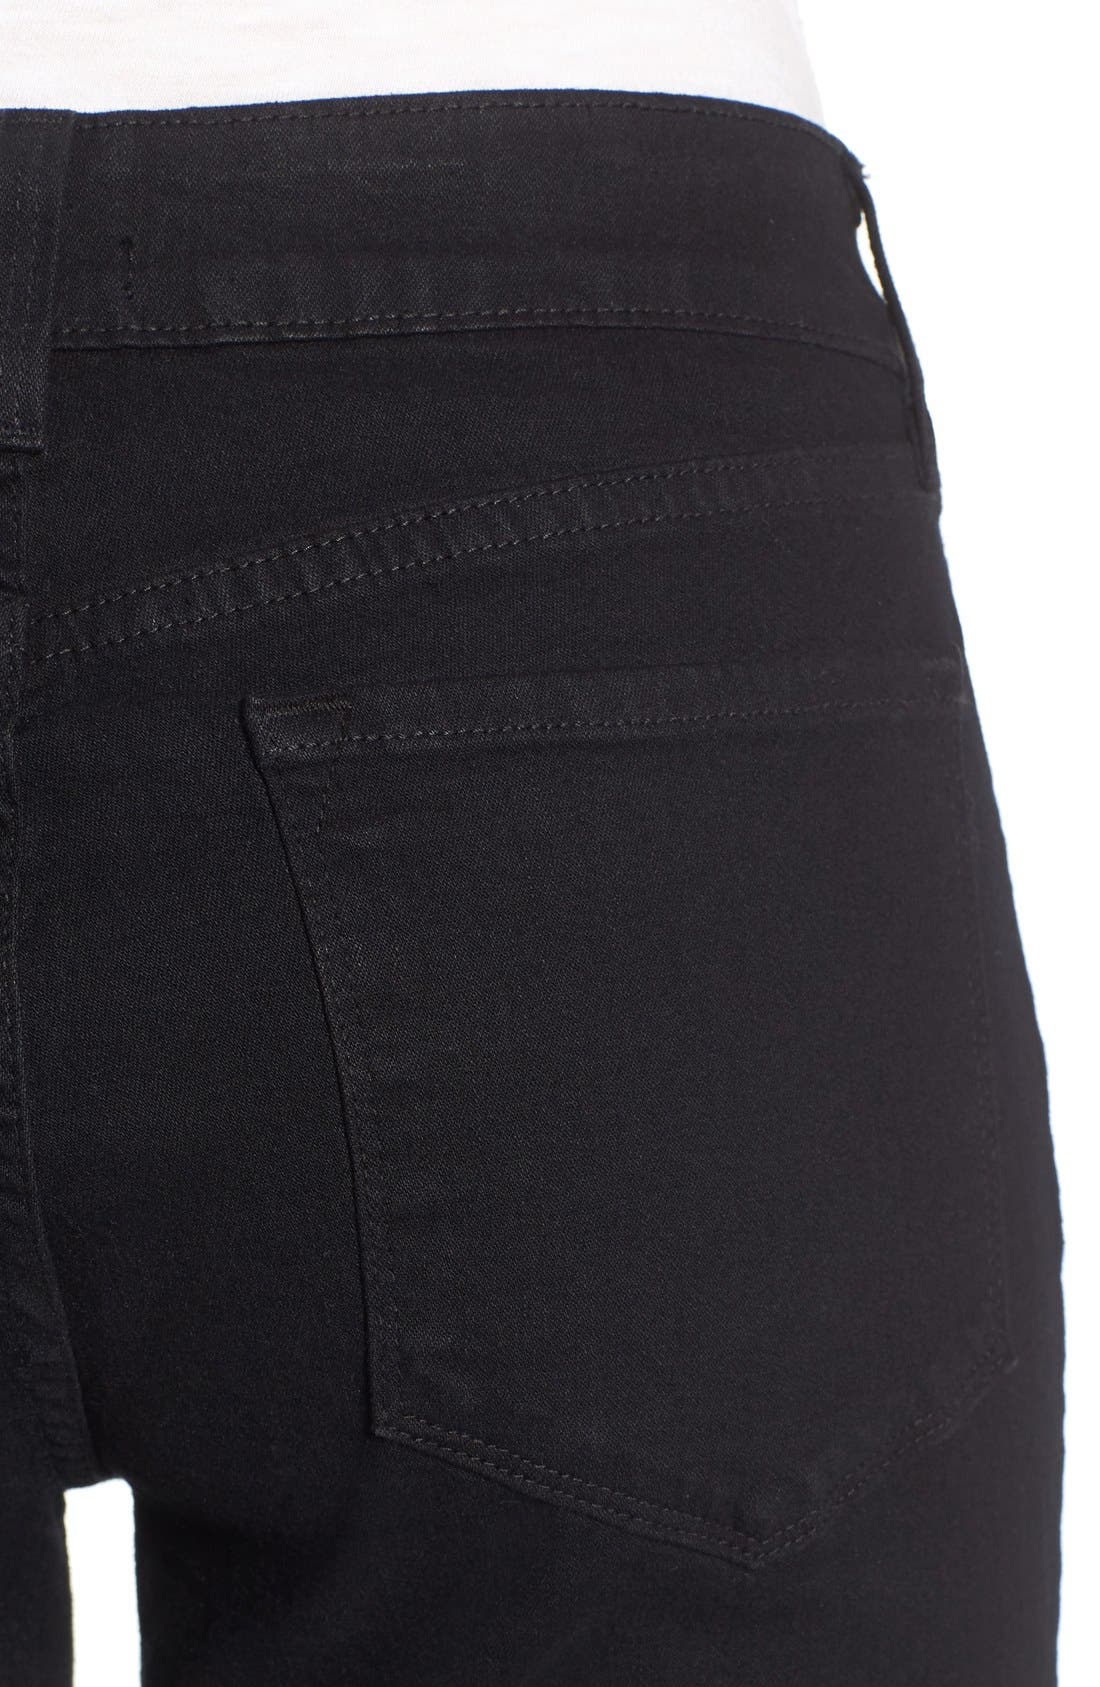 Barbara Stretch Bootcut Jeans,                             Alternate thumbnail 4, color,                             001